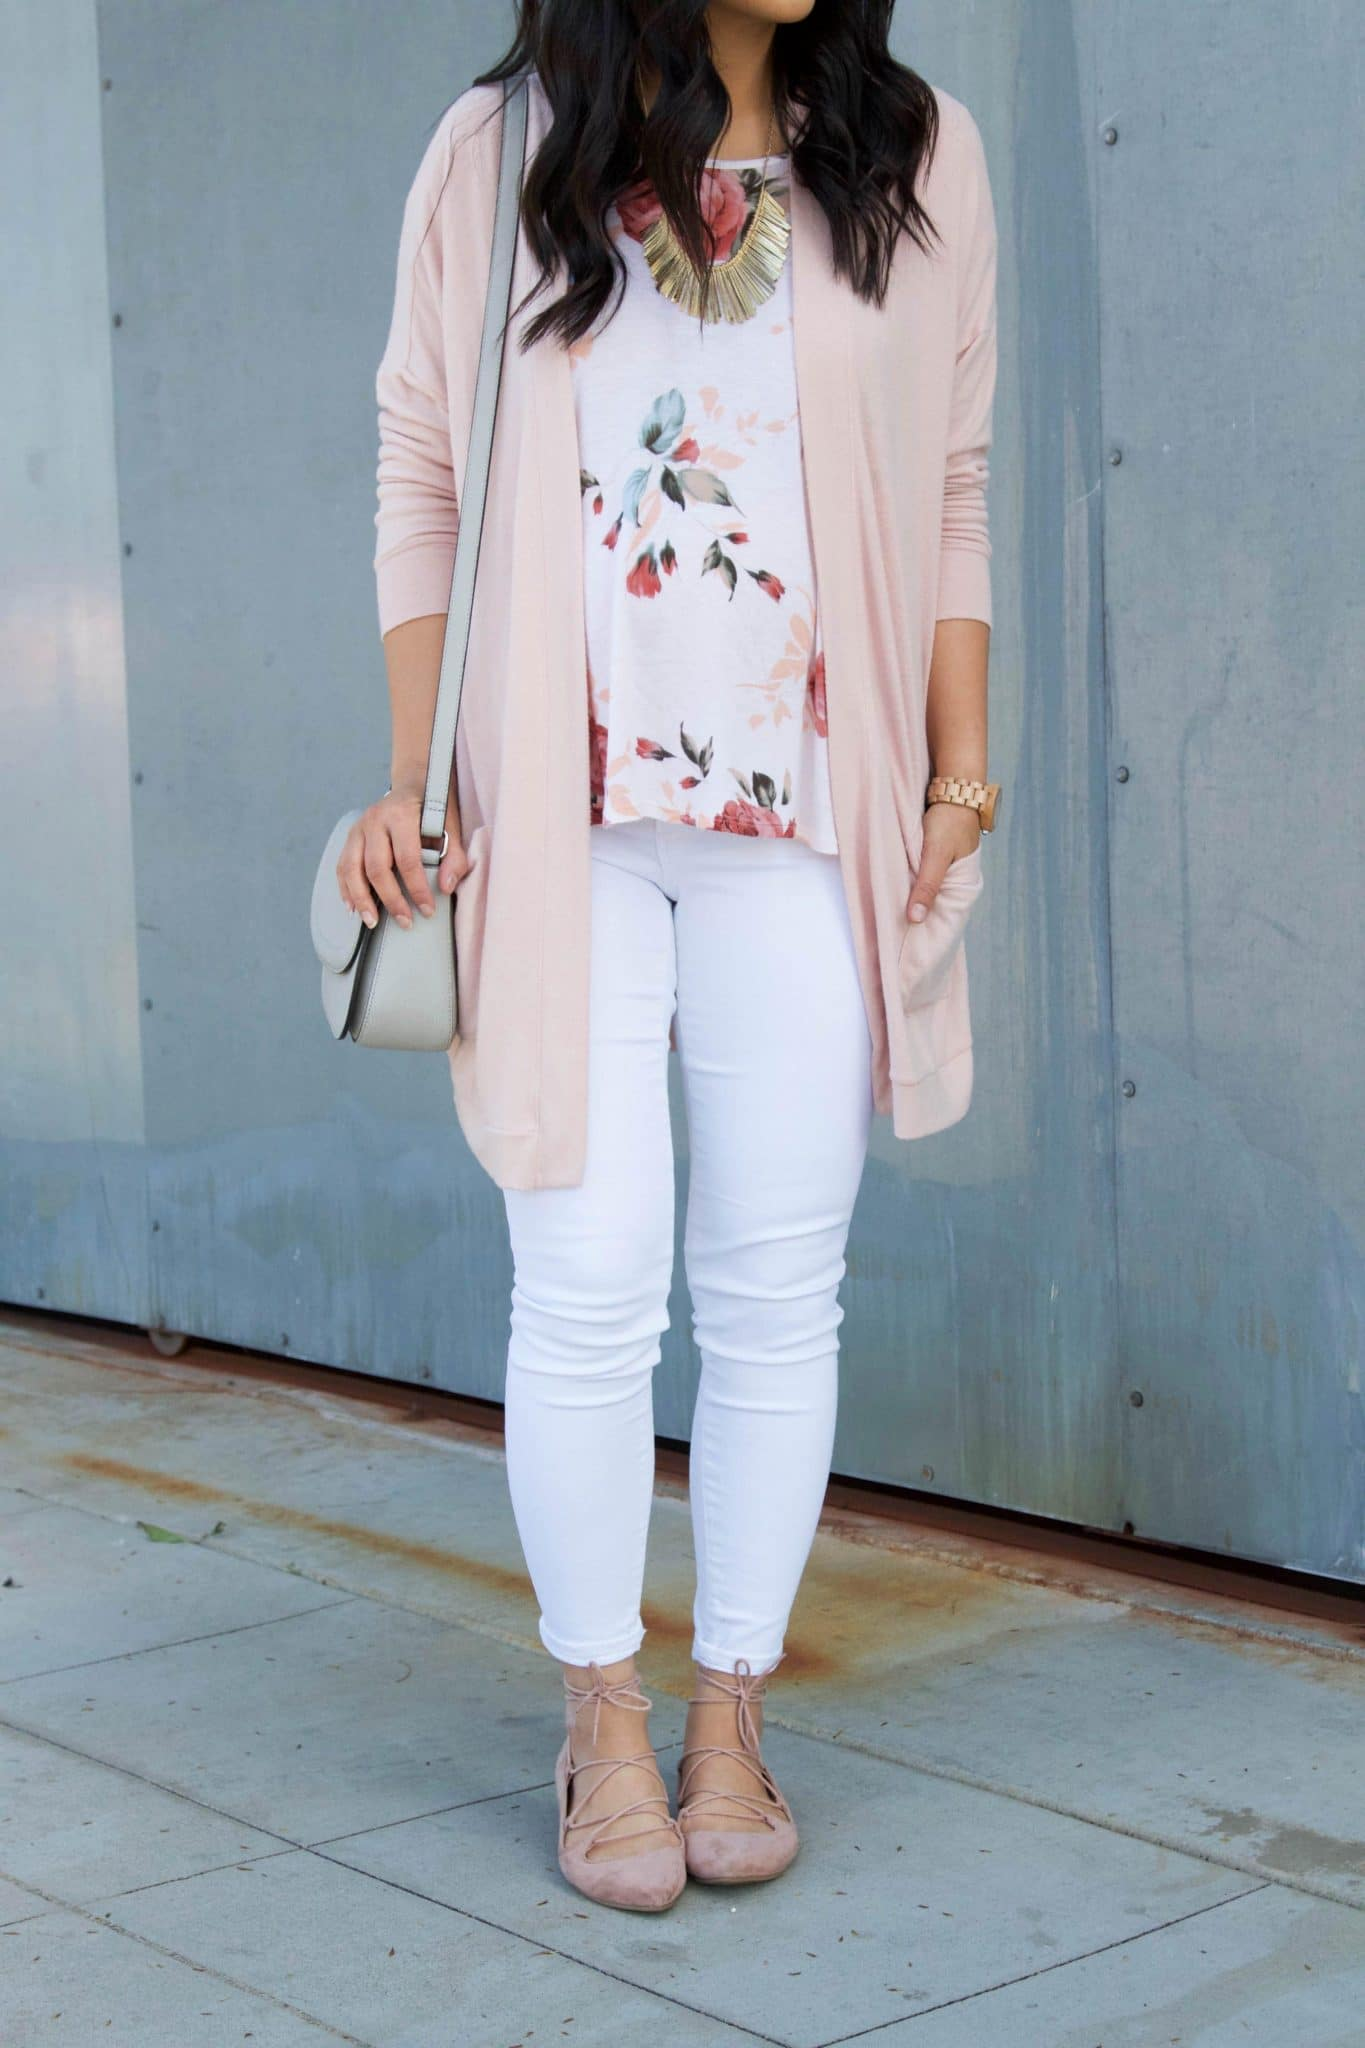 blush cardigan + blush ballet flats + white floral top + white jeans + grey purse